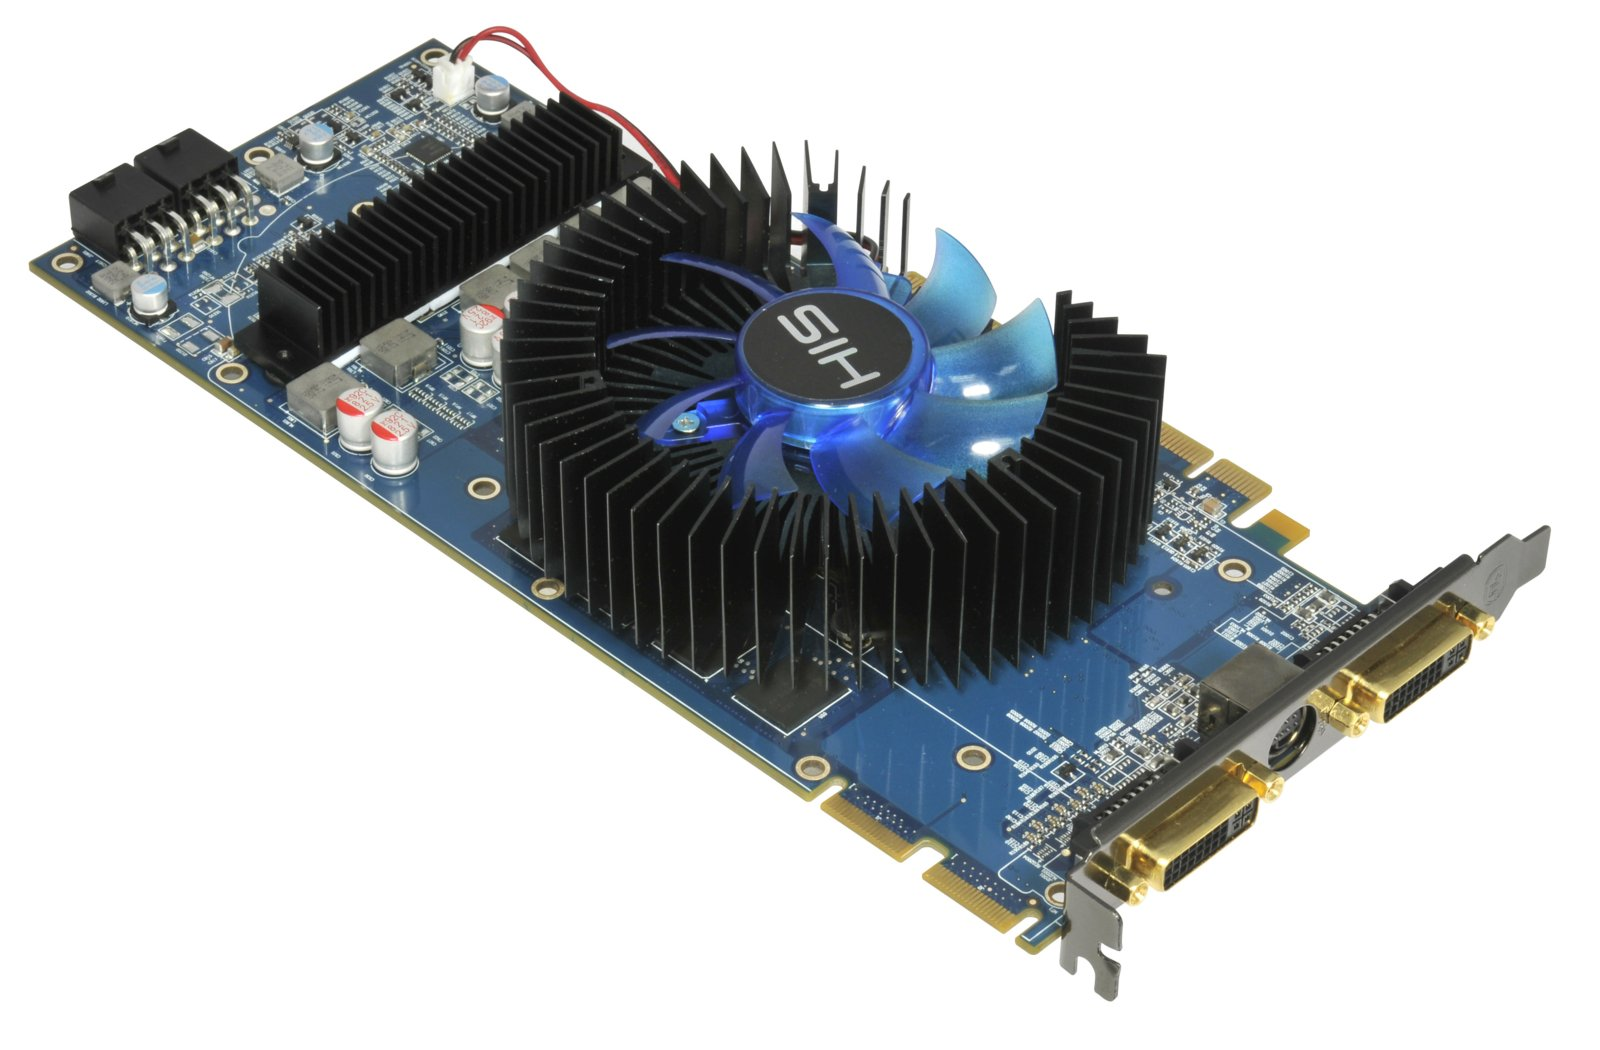 Radeon HD 4870: Specs and Reviews 16